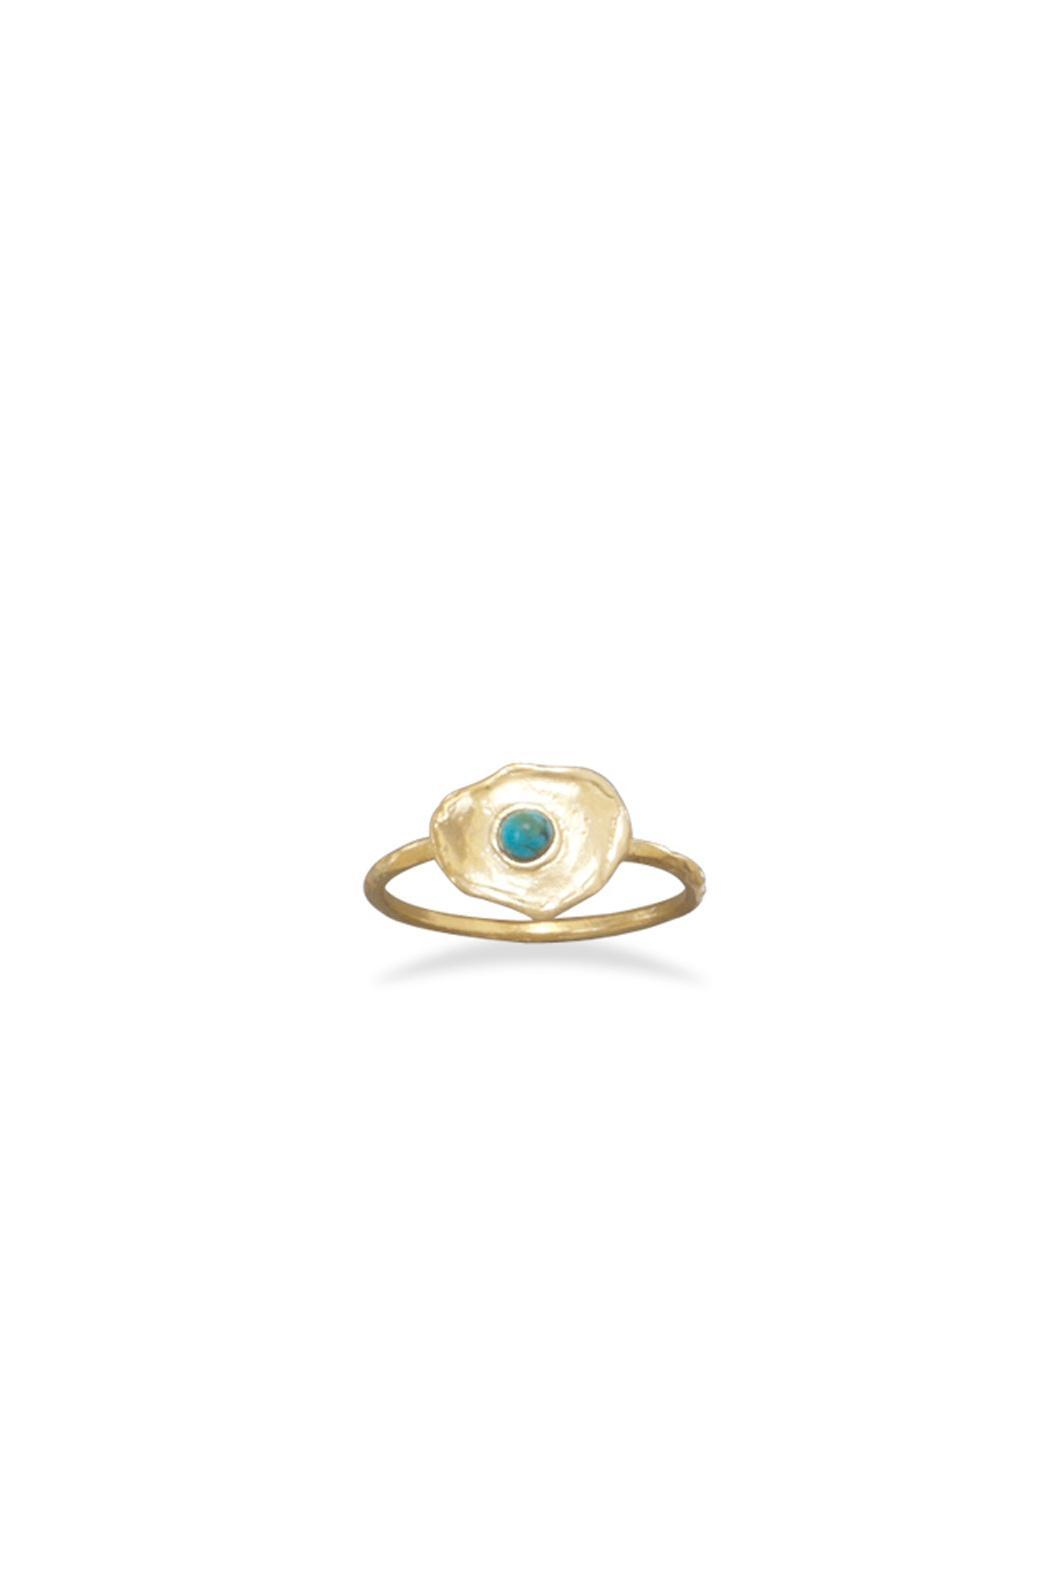 Wild Lilies Jewelry  Round Turquoise Ring - Main Image